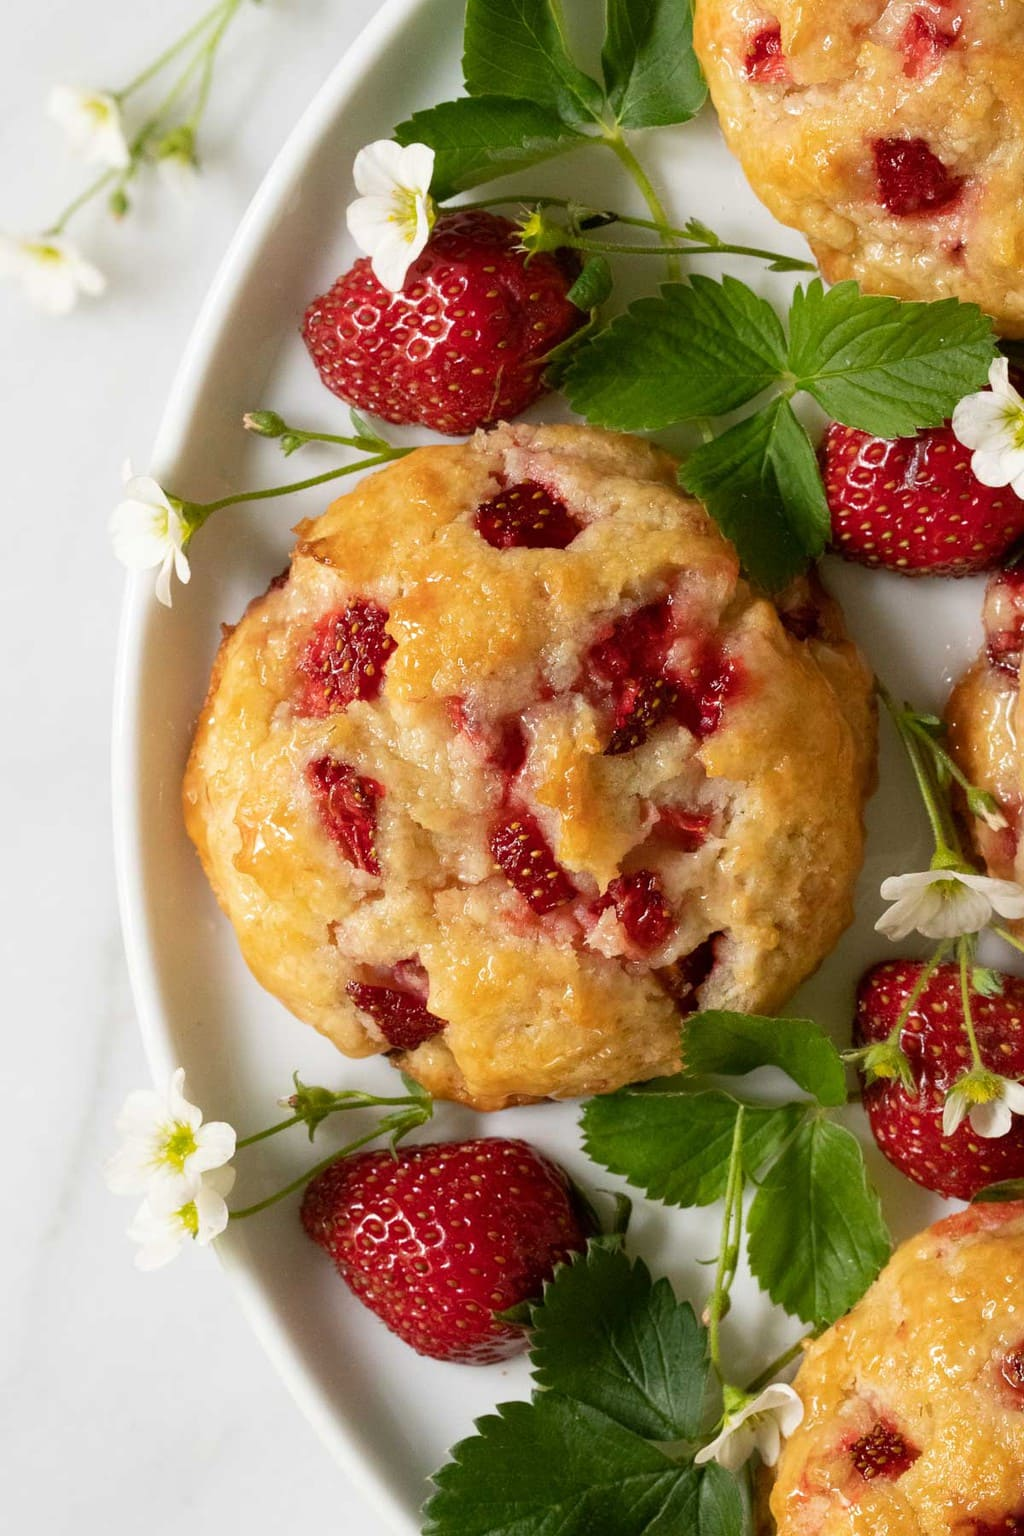 Overhead vertical closeup photo of a platter filled with Ridiculously Easy Fresh Strawberry Scones and decorated with strawberry leaves and flowers.